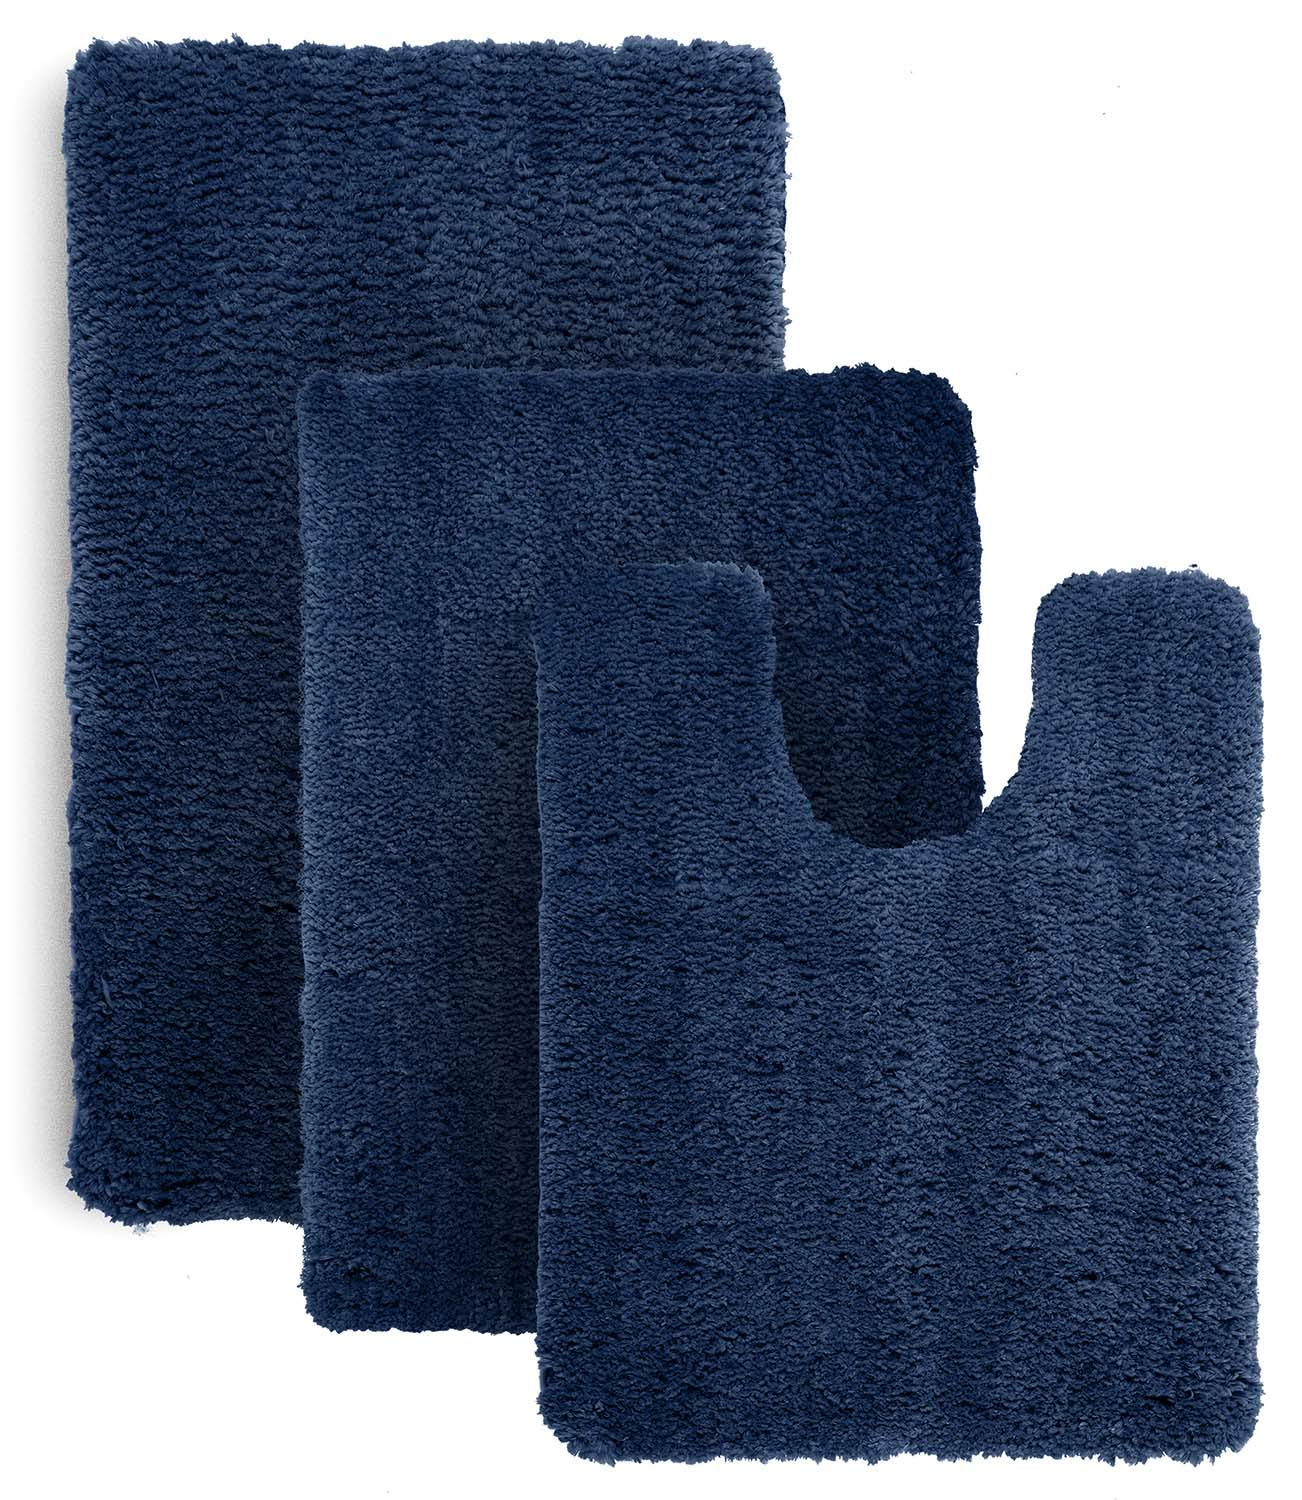 Plush Bathroom Rug Sets: Luxe Rug Royal Blue Plush Bathroom Rugs Set Bath Shower